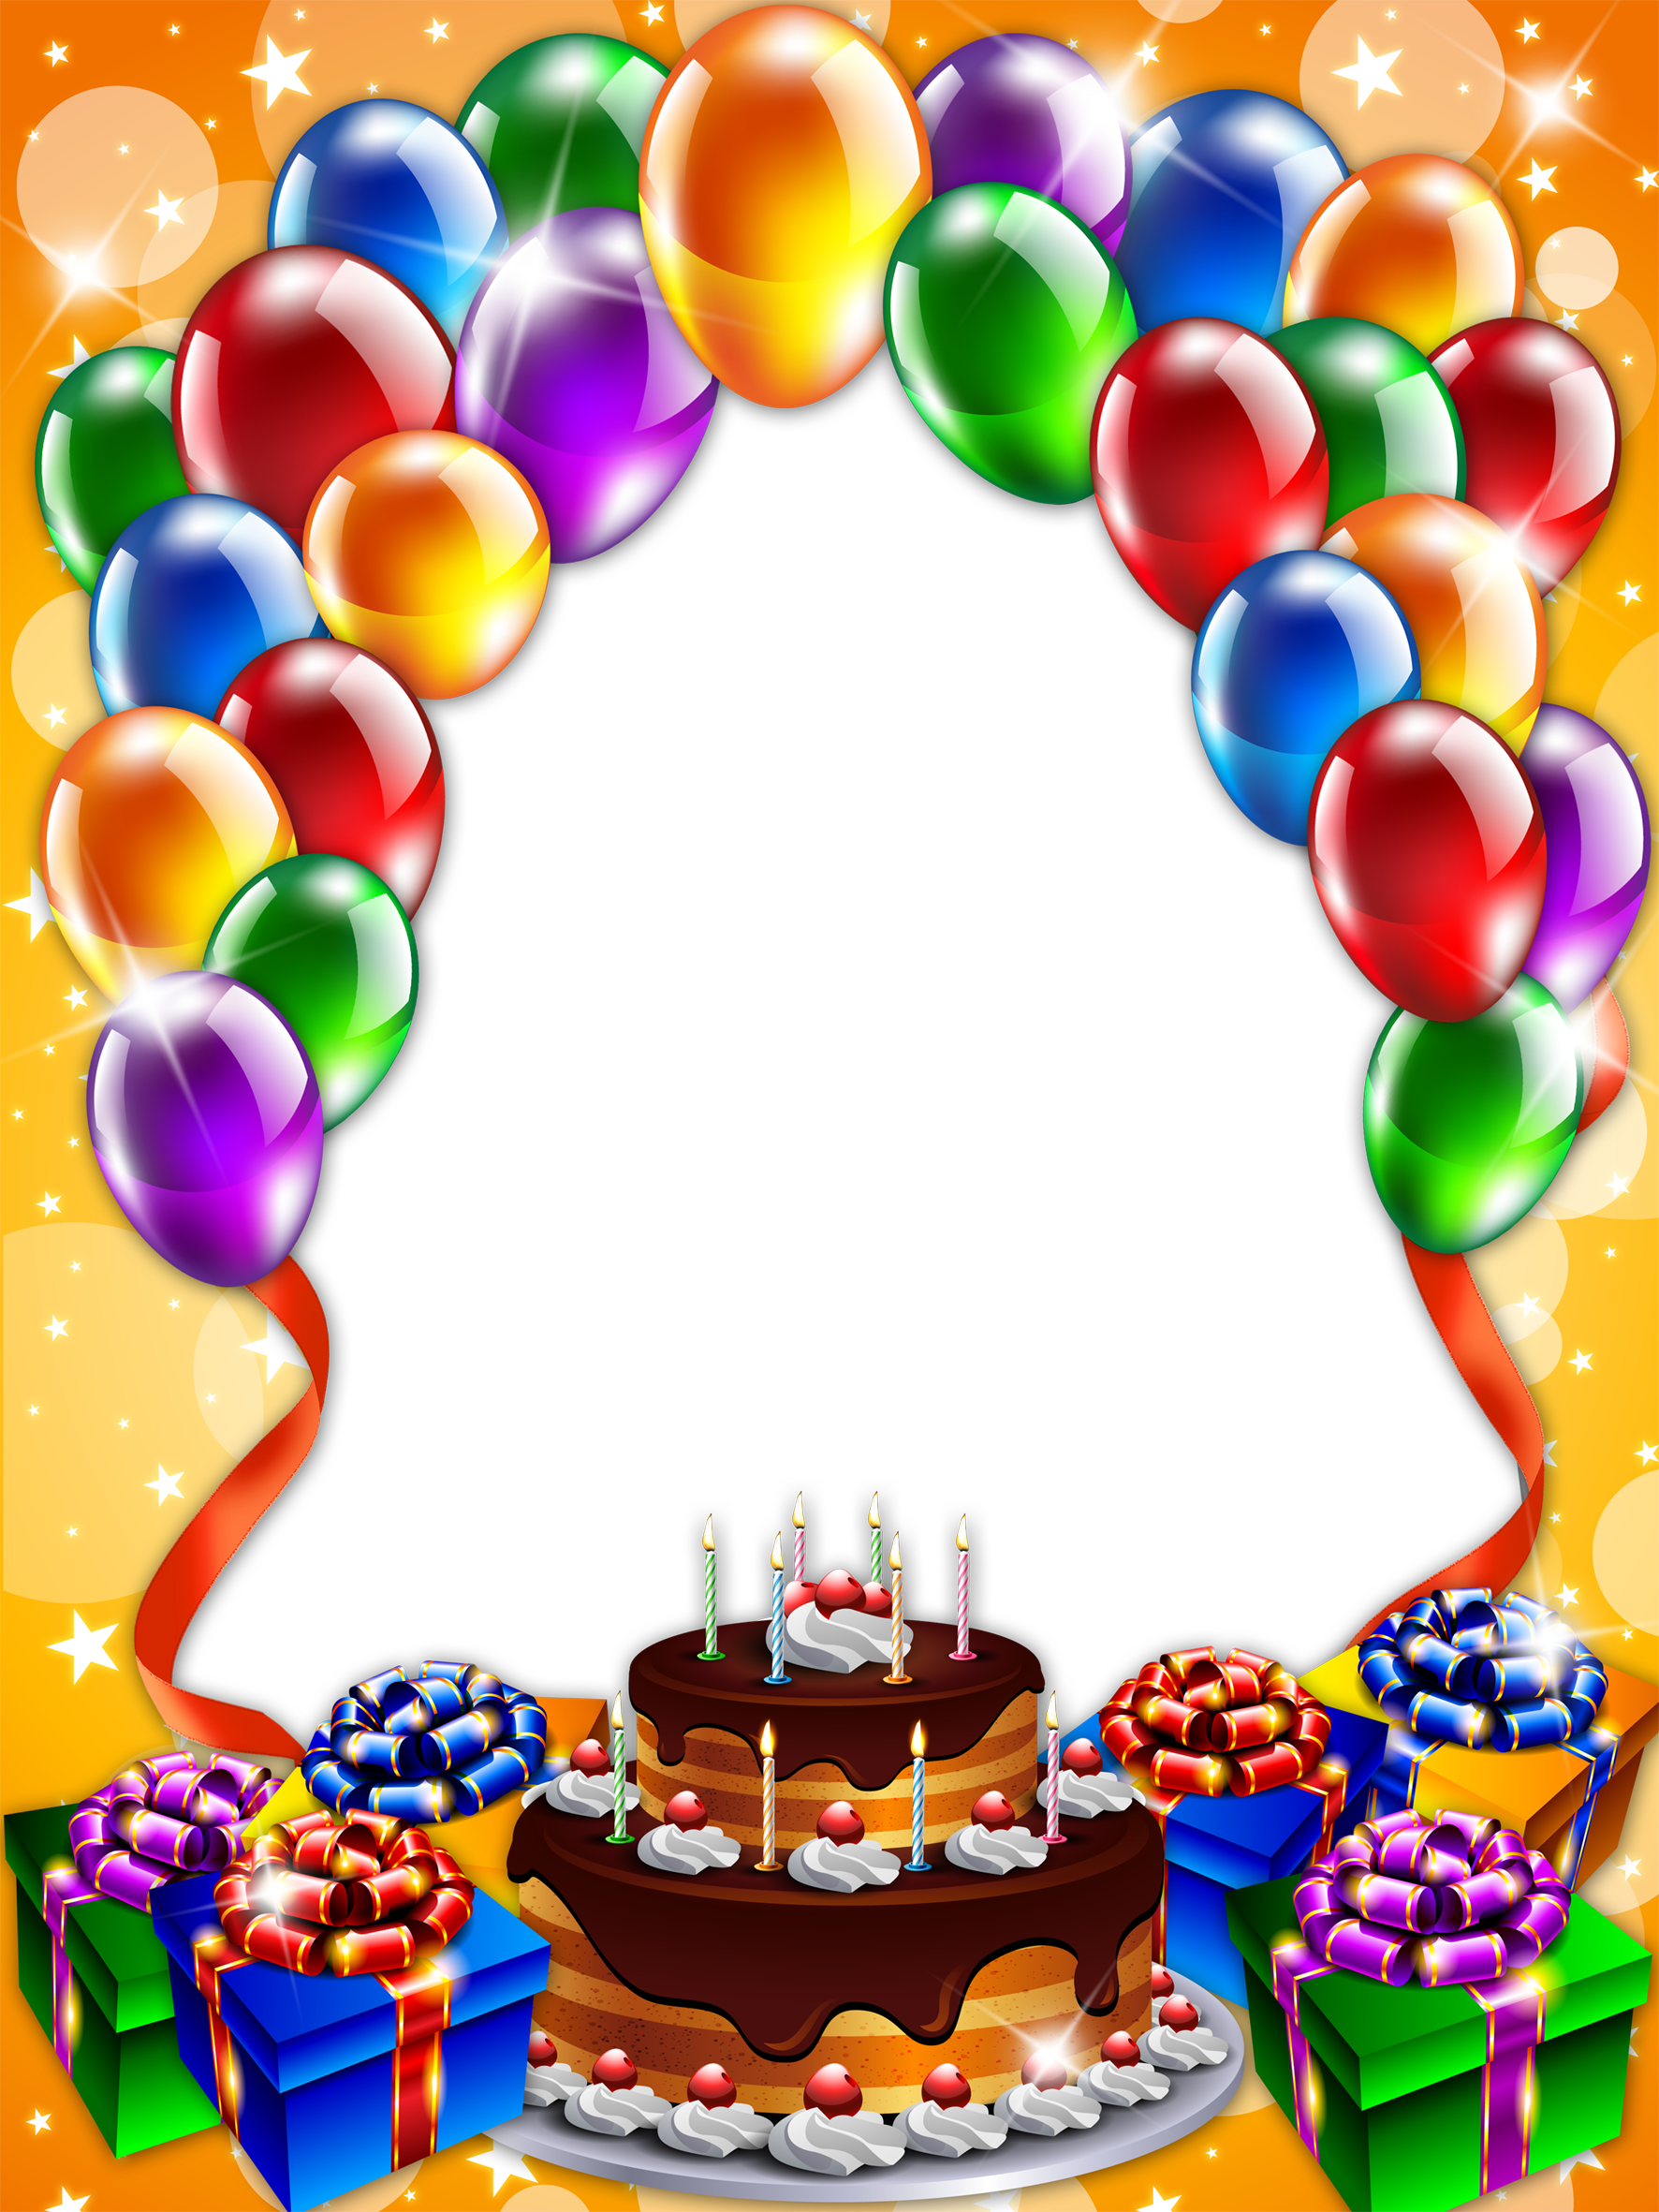 Birthday Frame png images free download.